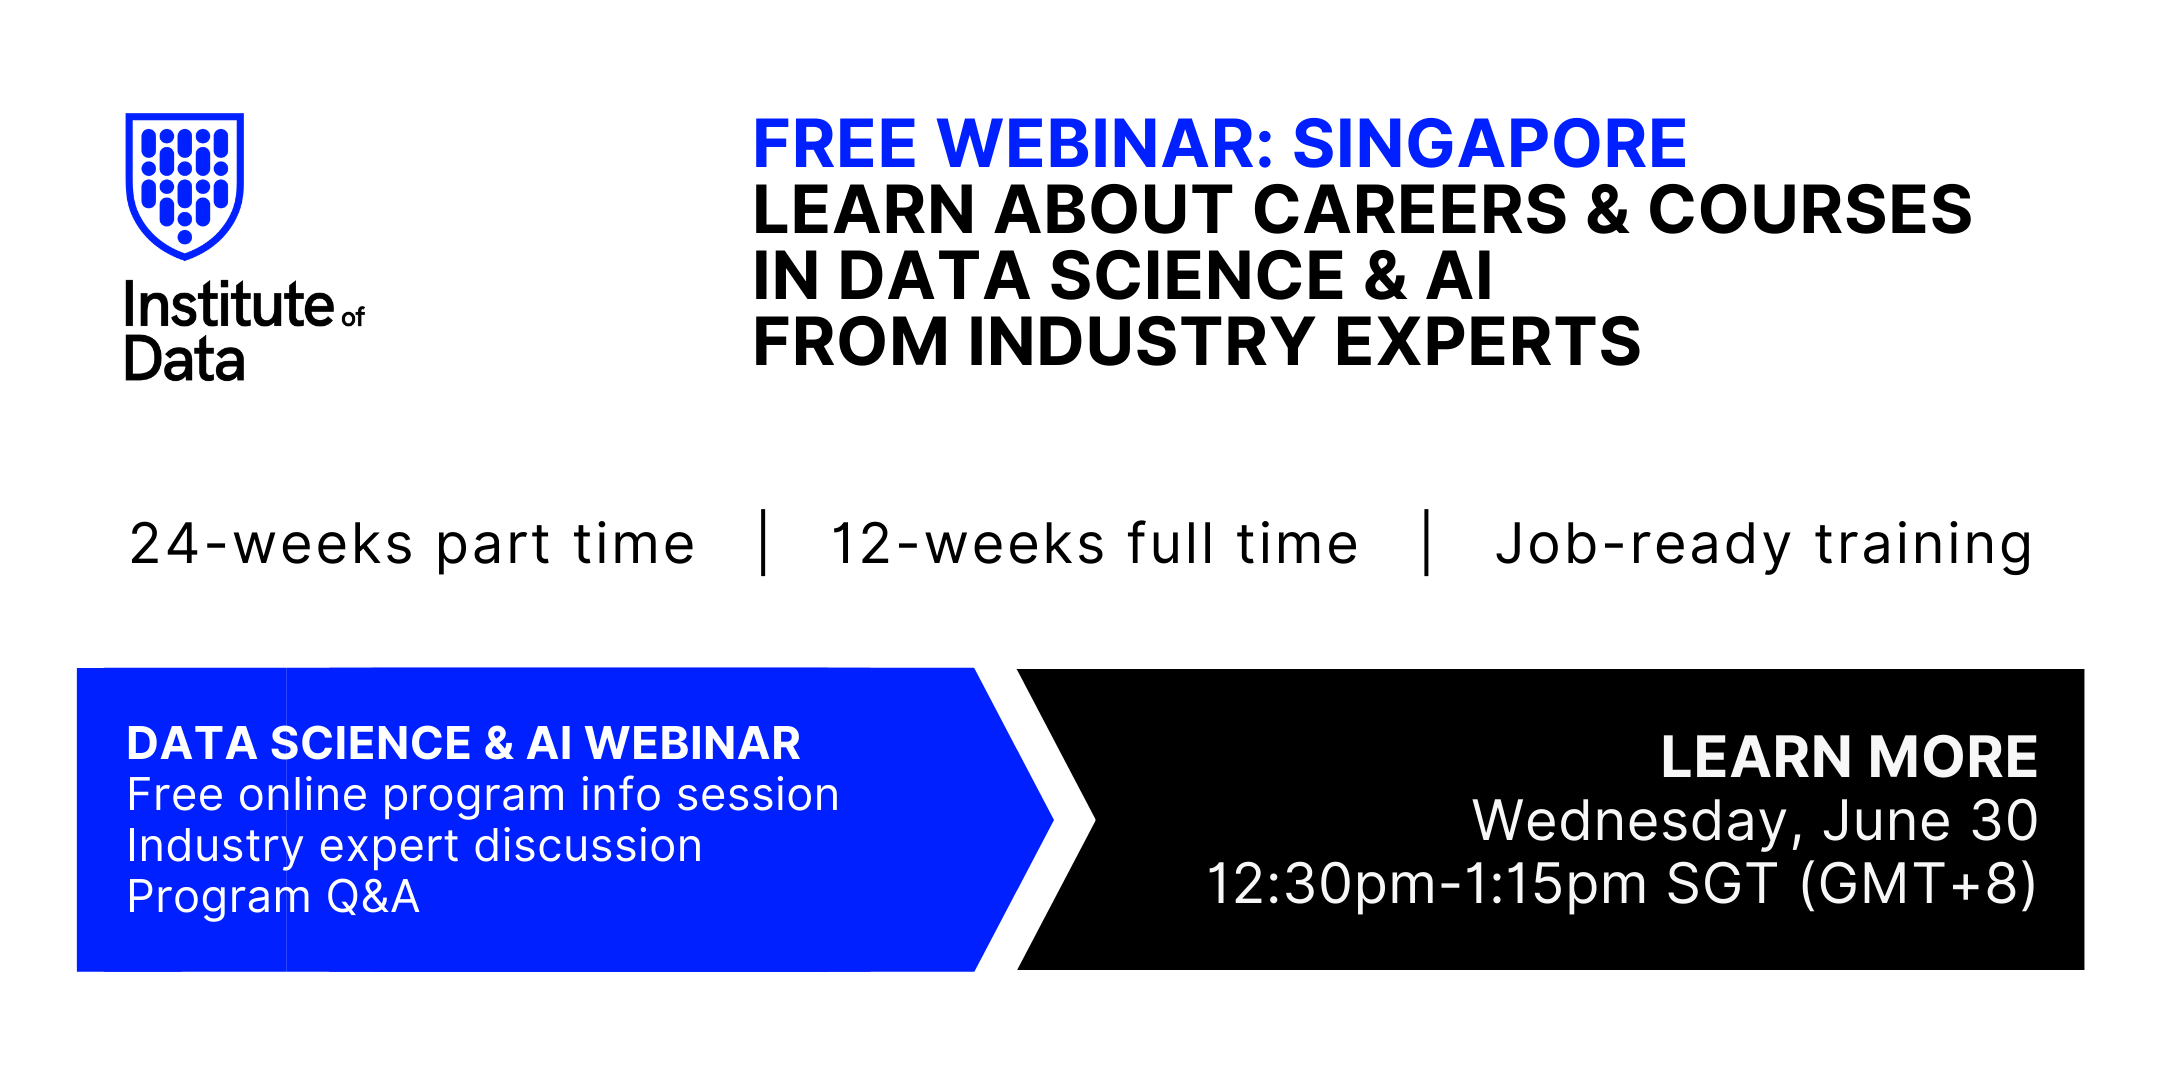 Institute of Data Singapore - Data Science and AI Program - Online Info Session - June 30 2021